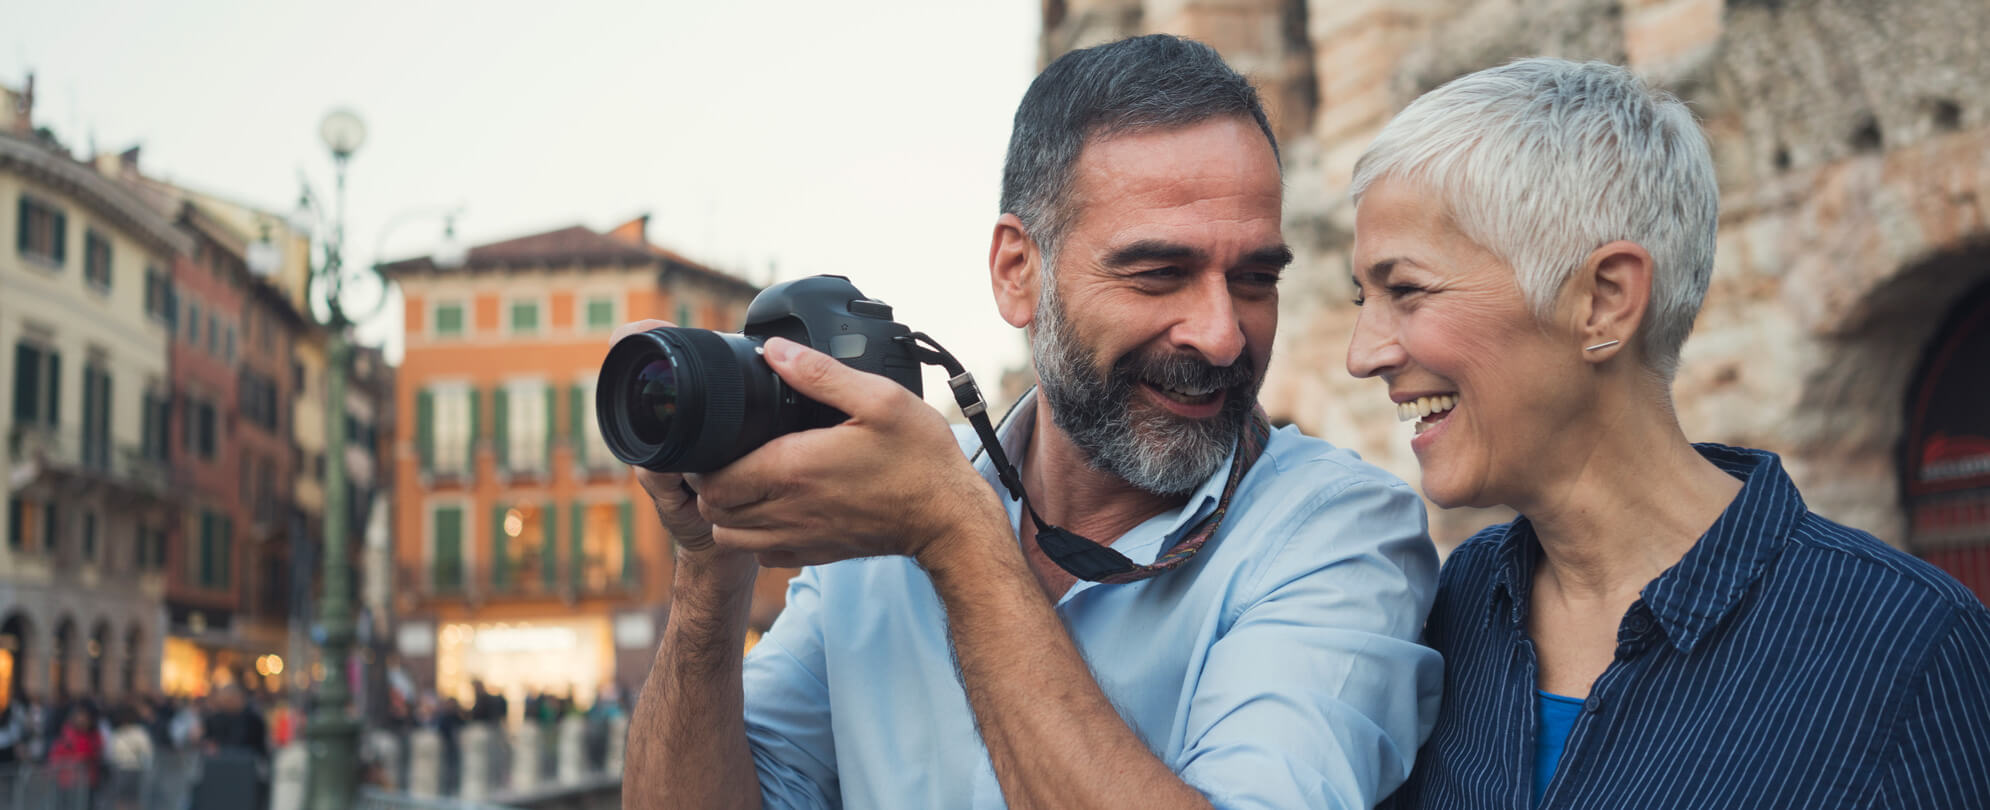 Man smiling in baby blue shirt holding up his DSLR camera